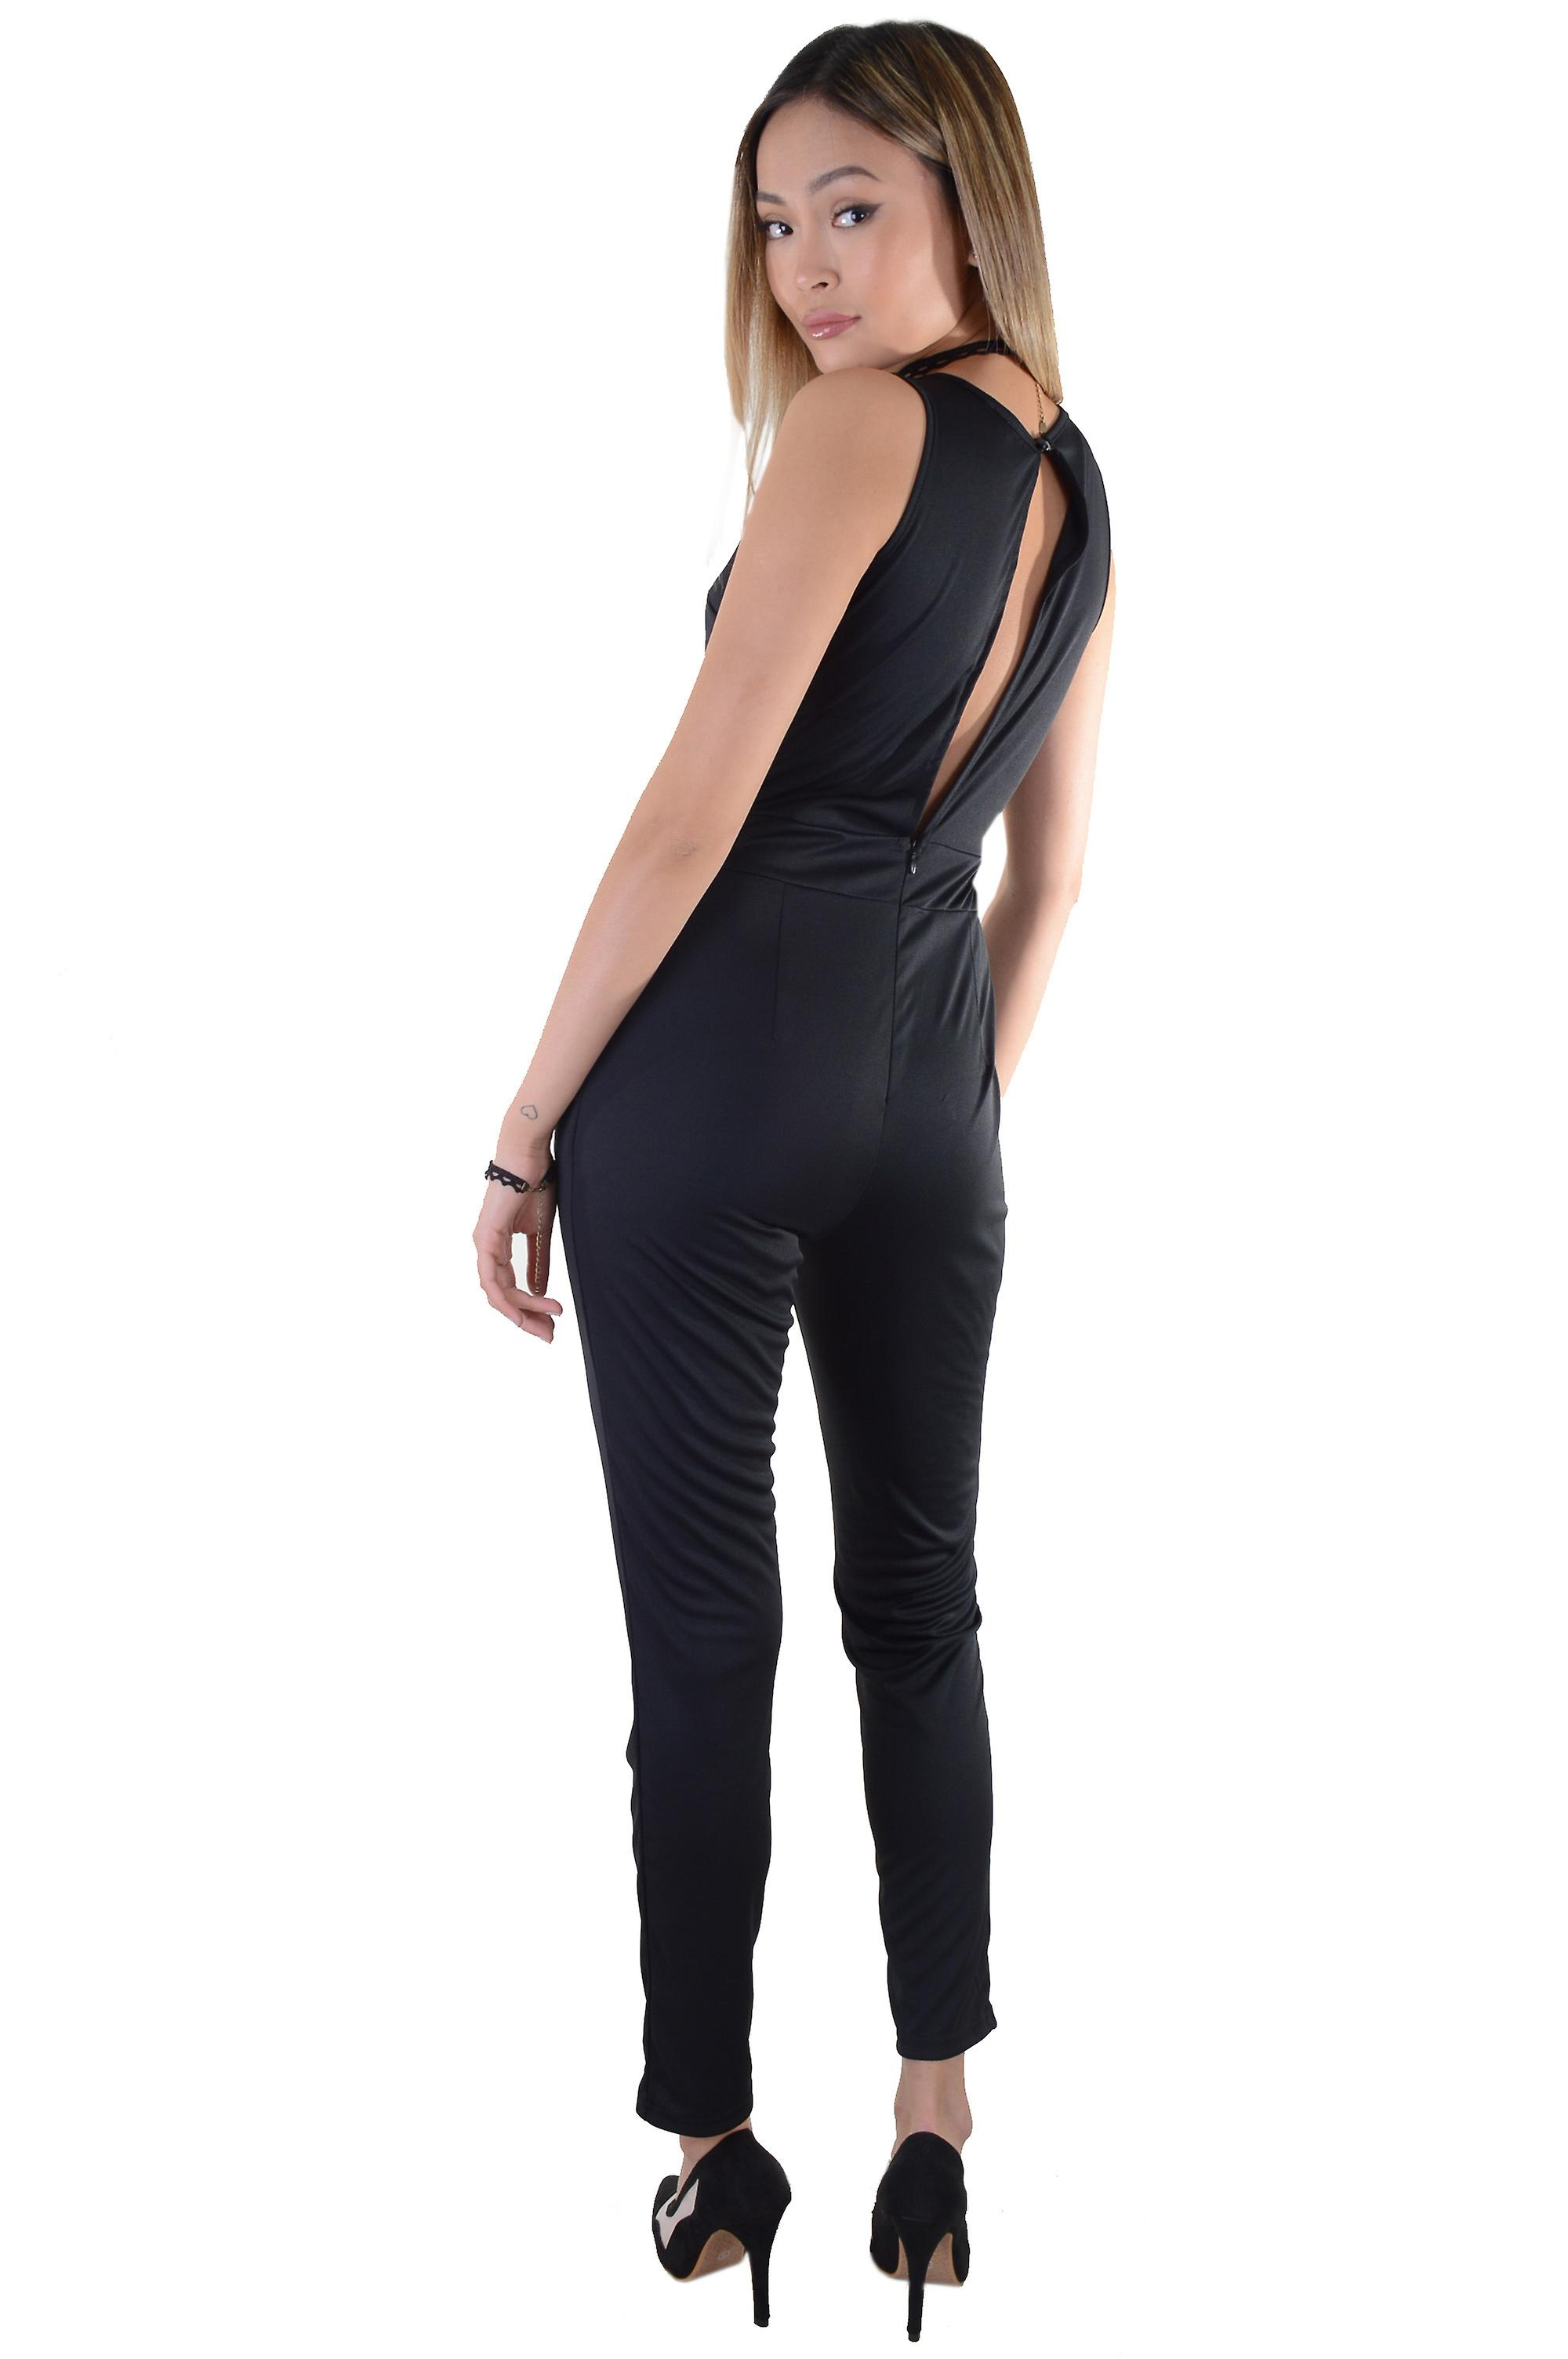 Lovemystyle Jumpsuit In Black Featuring Peak-A-Bo Back